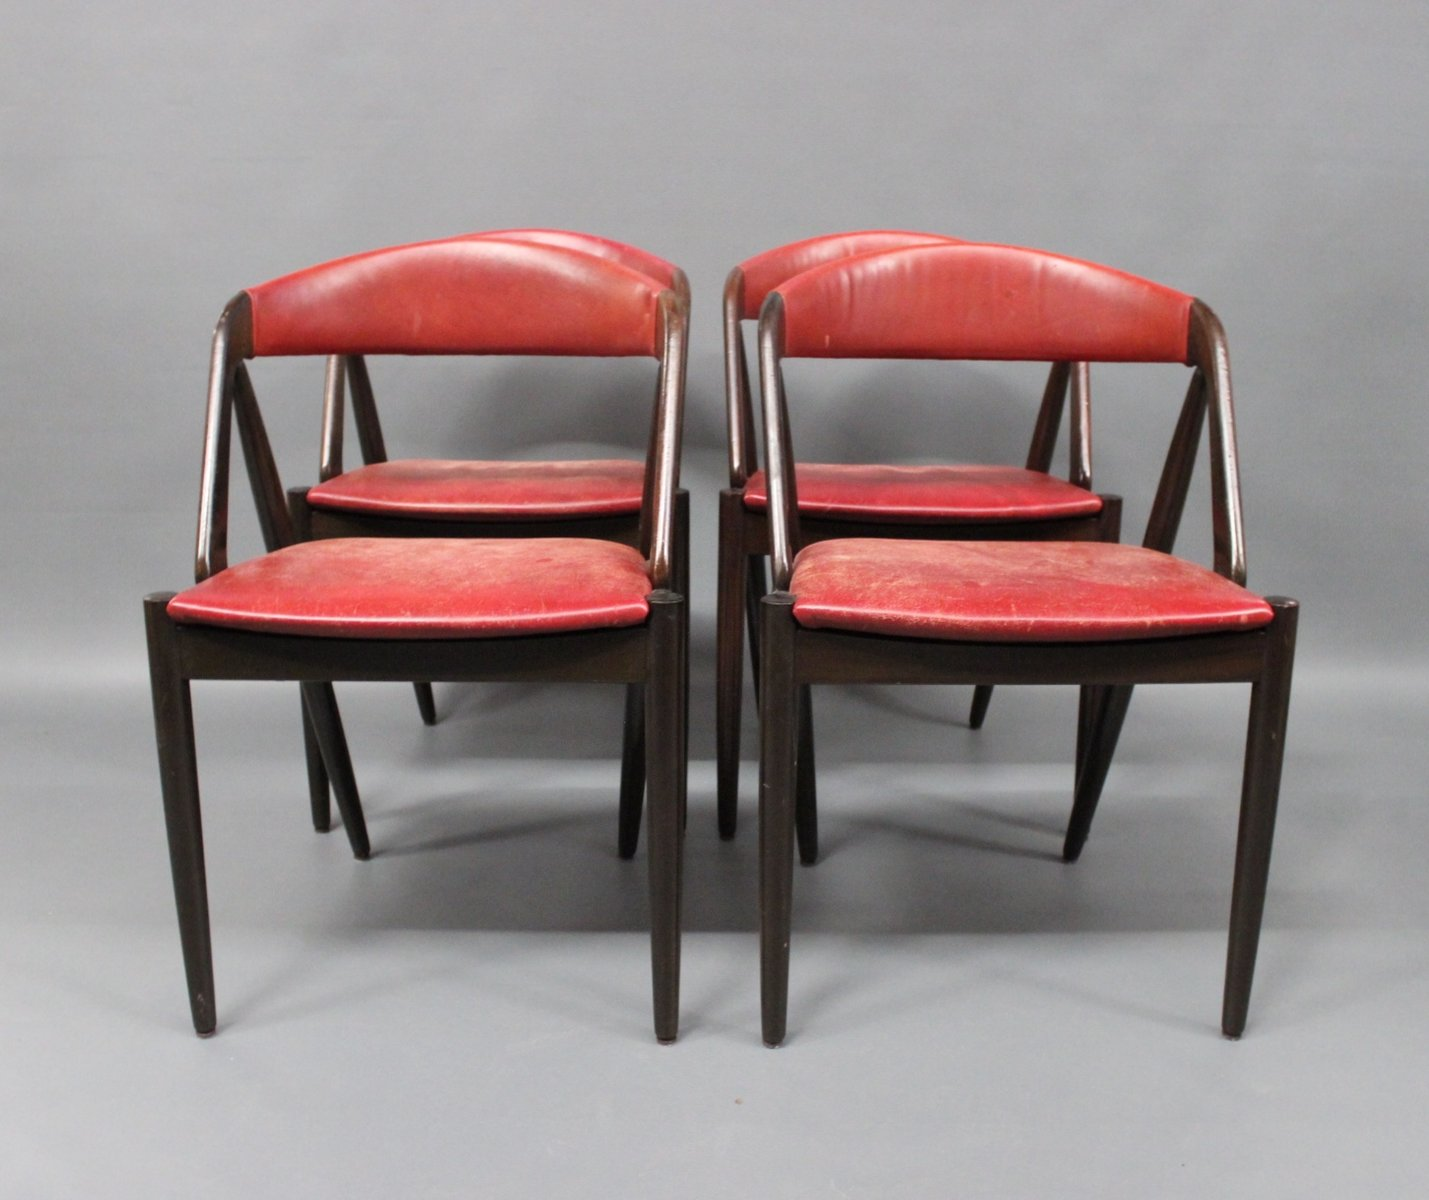 Retro Dining Room Chairs: Vintage Model 31 Dining Room Chairs By Kai Kristiansen For